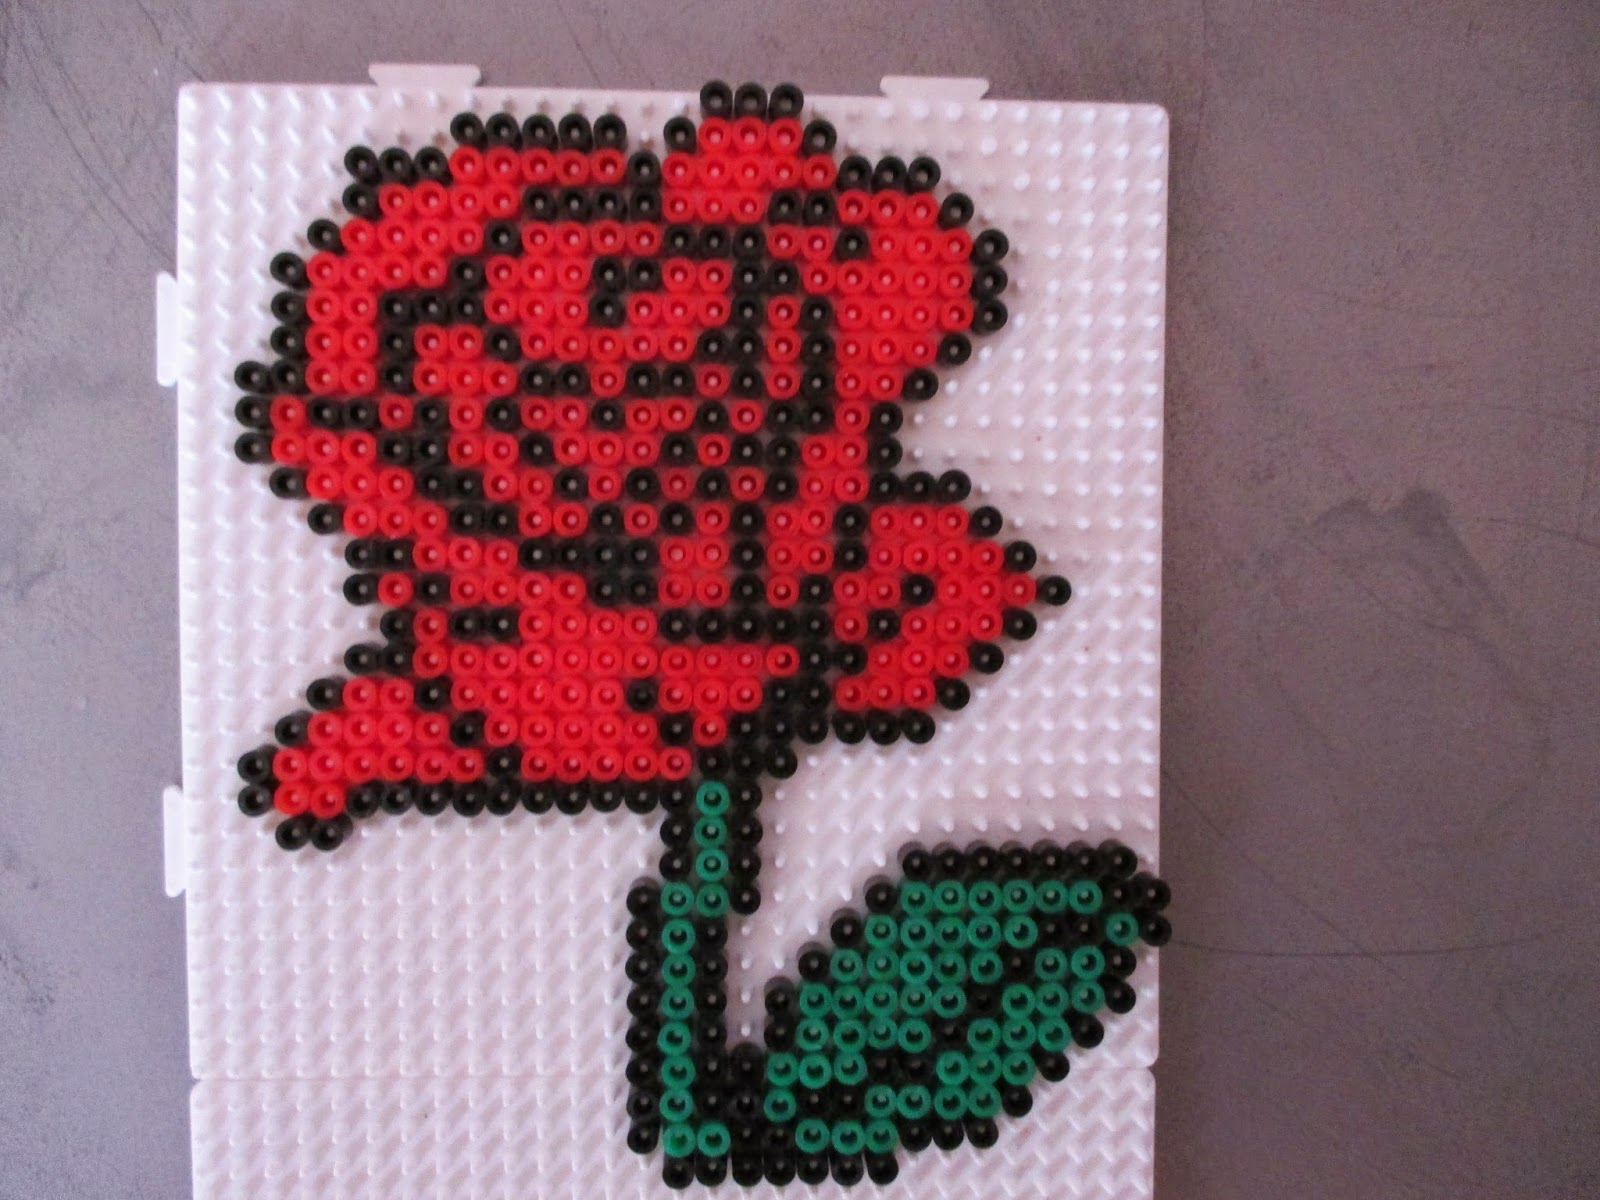 pixel art en perle hama rose en perler beads. Black Bedroom Furniture Sets. Home Design Ideas